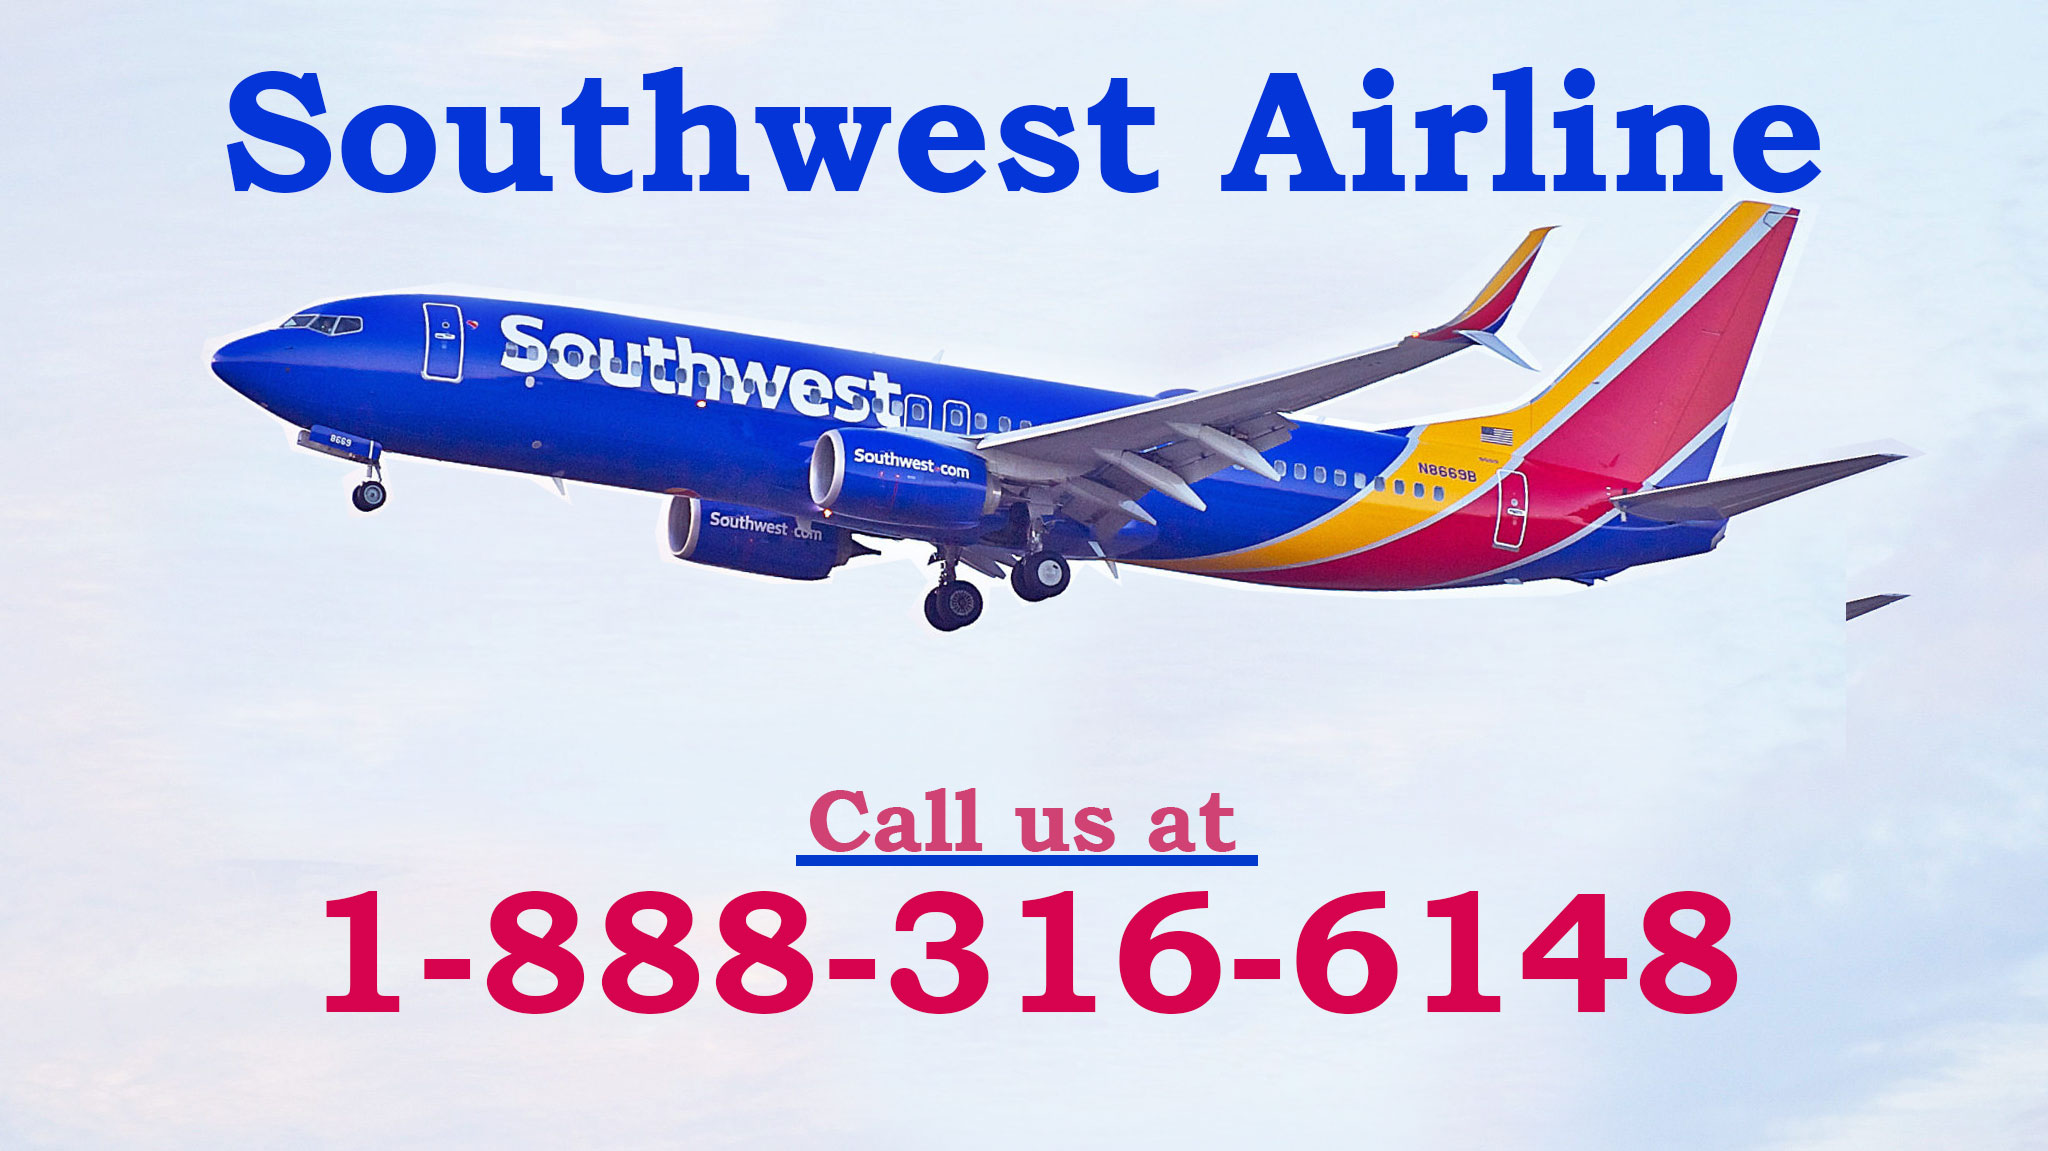 Southwest Airline Tickets {1-888-316-6148} Southwest Airline Number